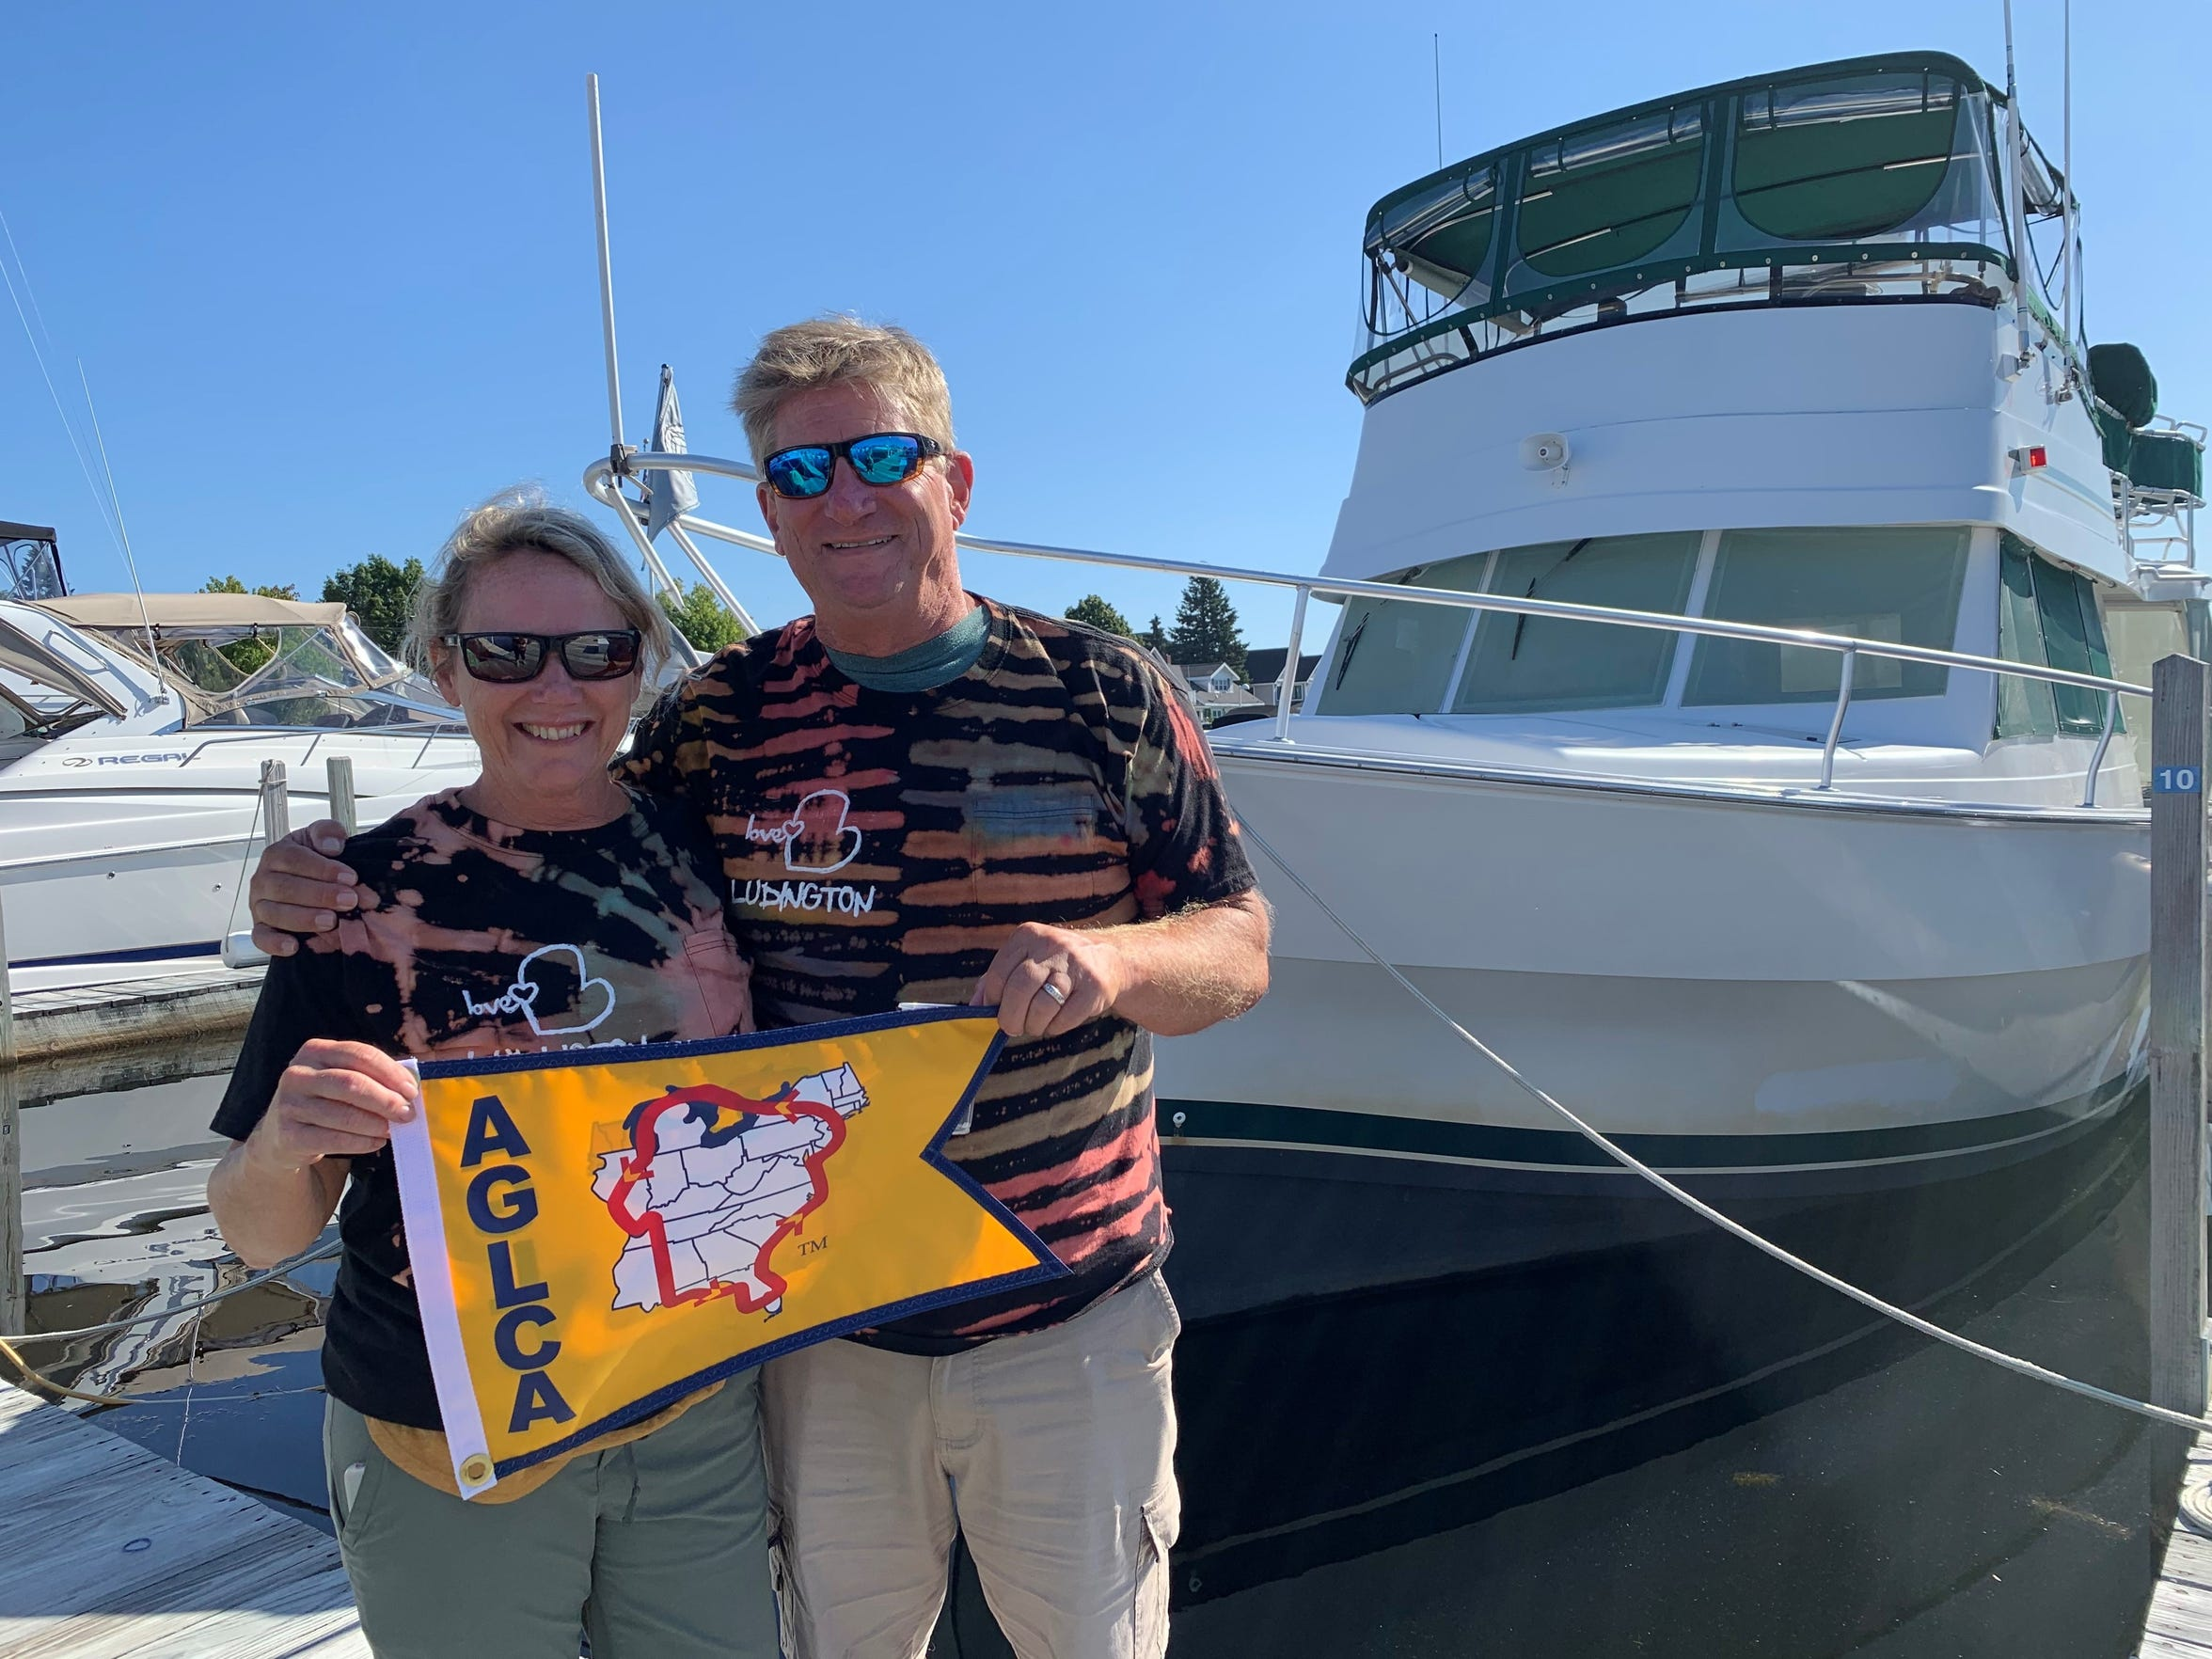 Rose and Dave Baker of Milford are members of the America's Great Loop Cruisers' Association and have completed their nearly 1 year, 5,600 mile journey.